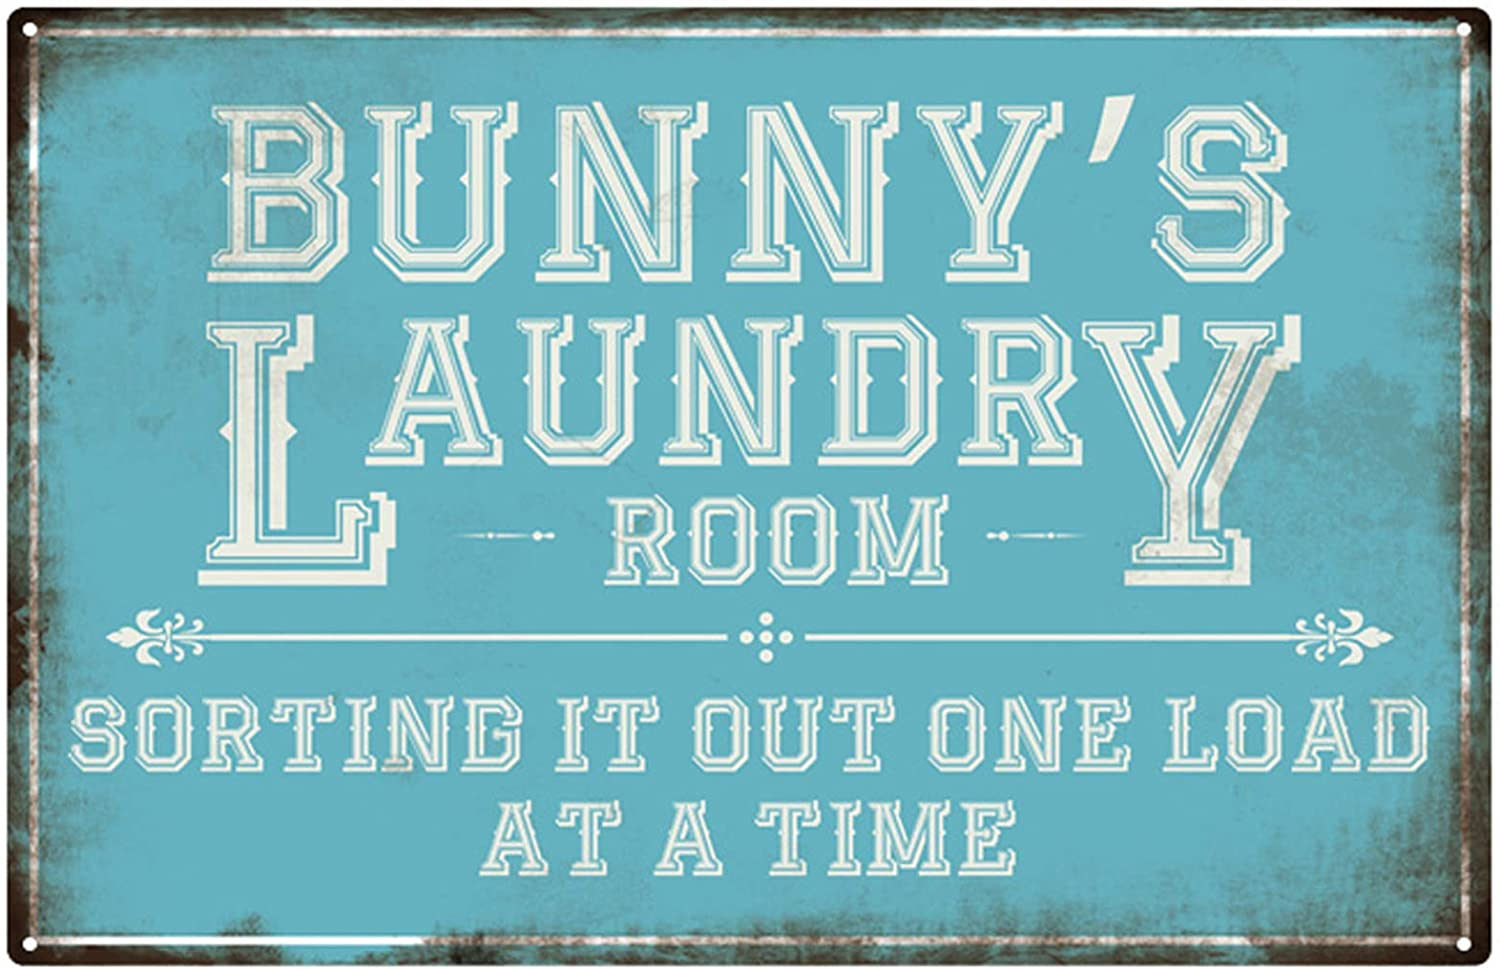 Personalized Laundry Sign,Custom Vintage Laundry Room Decor Wall Sign, Laundry Room Metal Decorative Sign 12 X 16 Metal